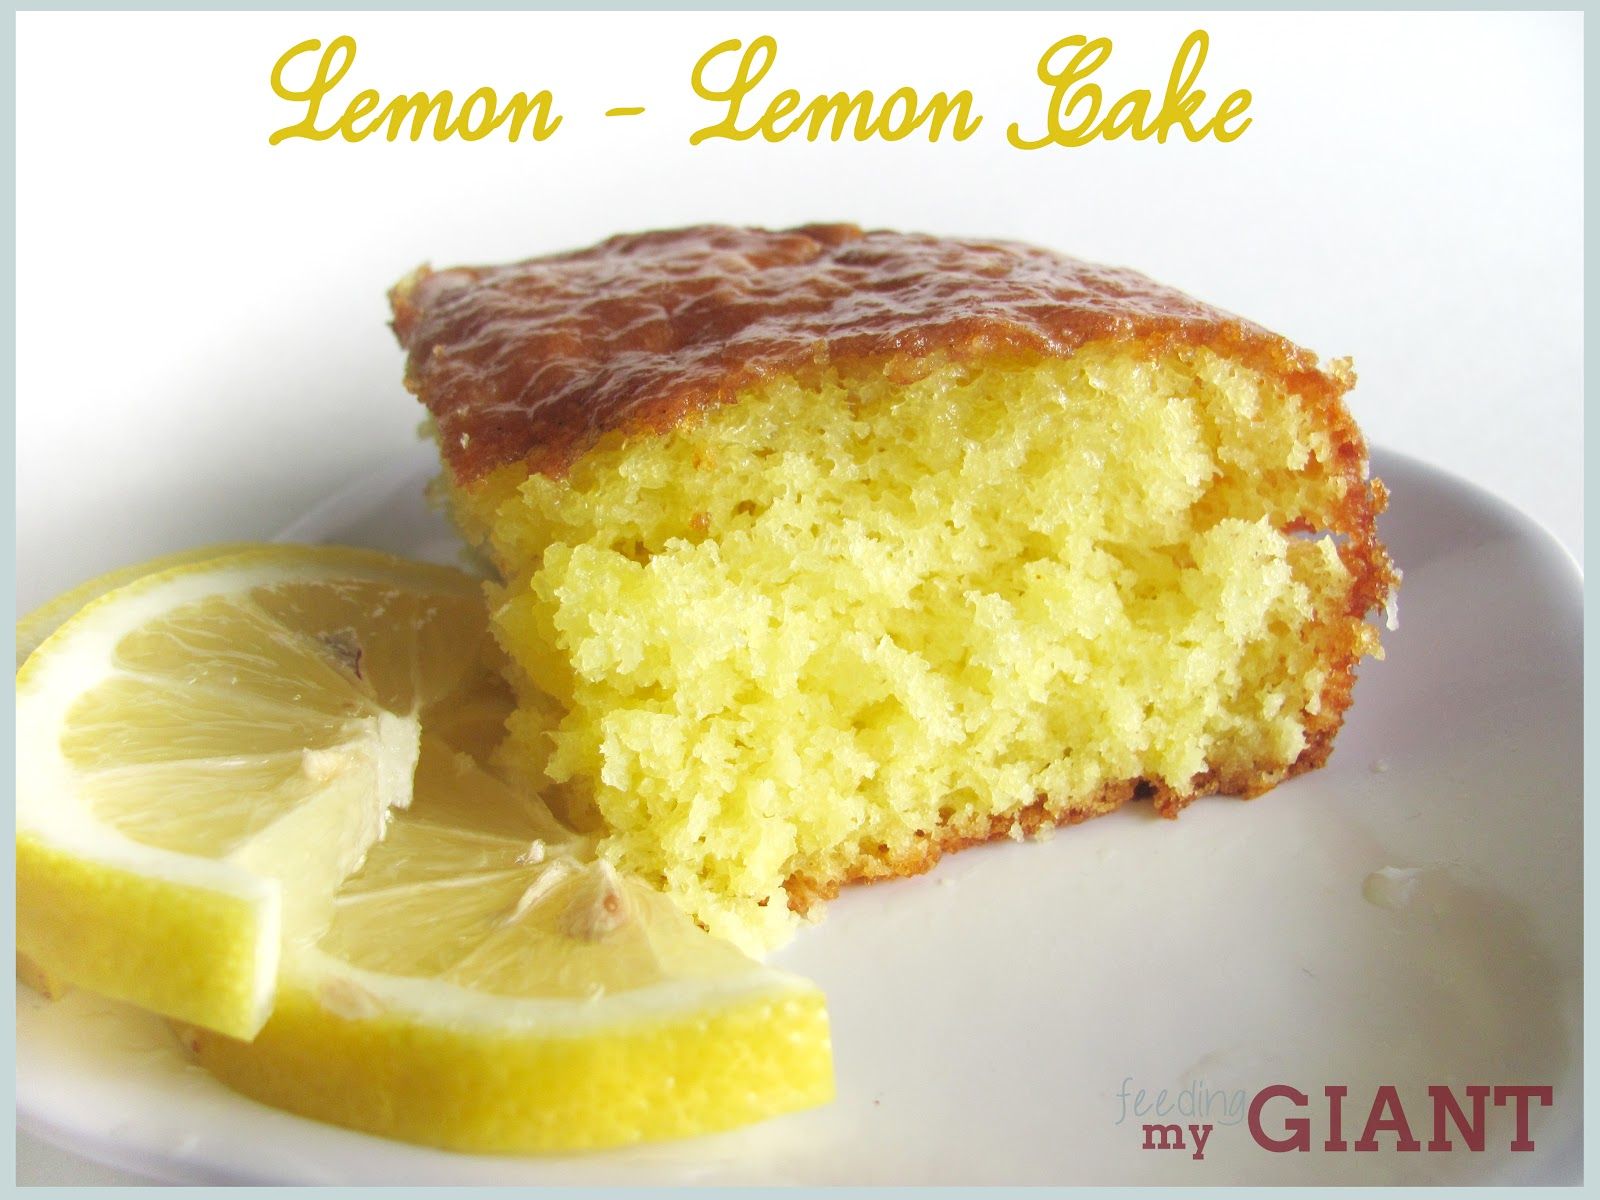 Feeding My Giant: Lemon - Lemon Cake